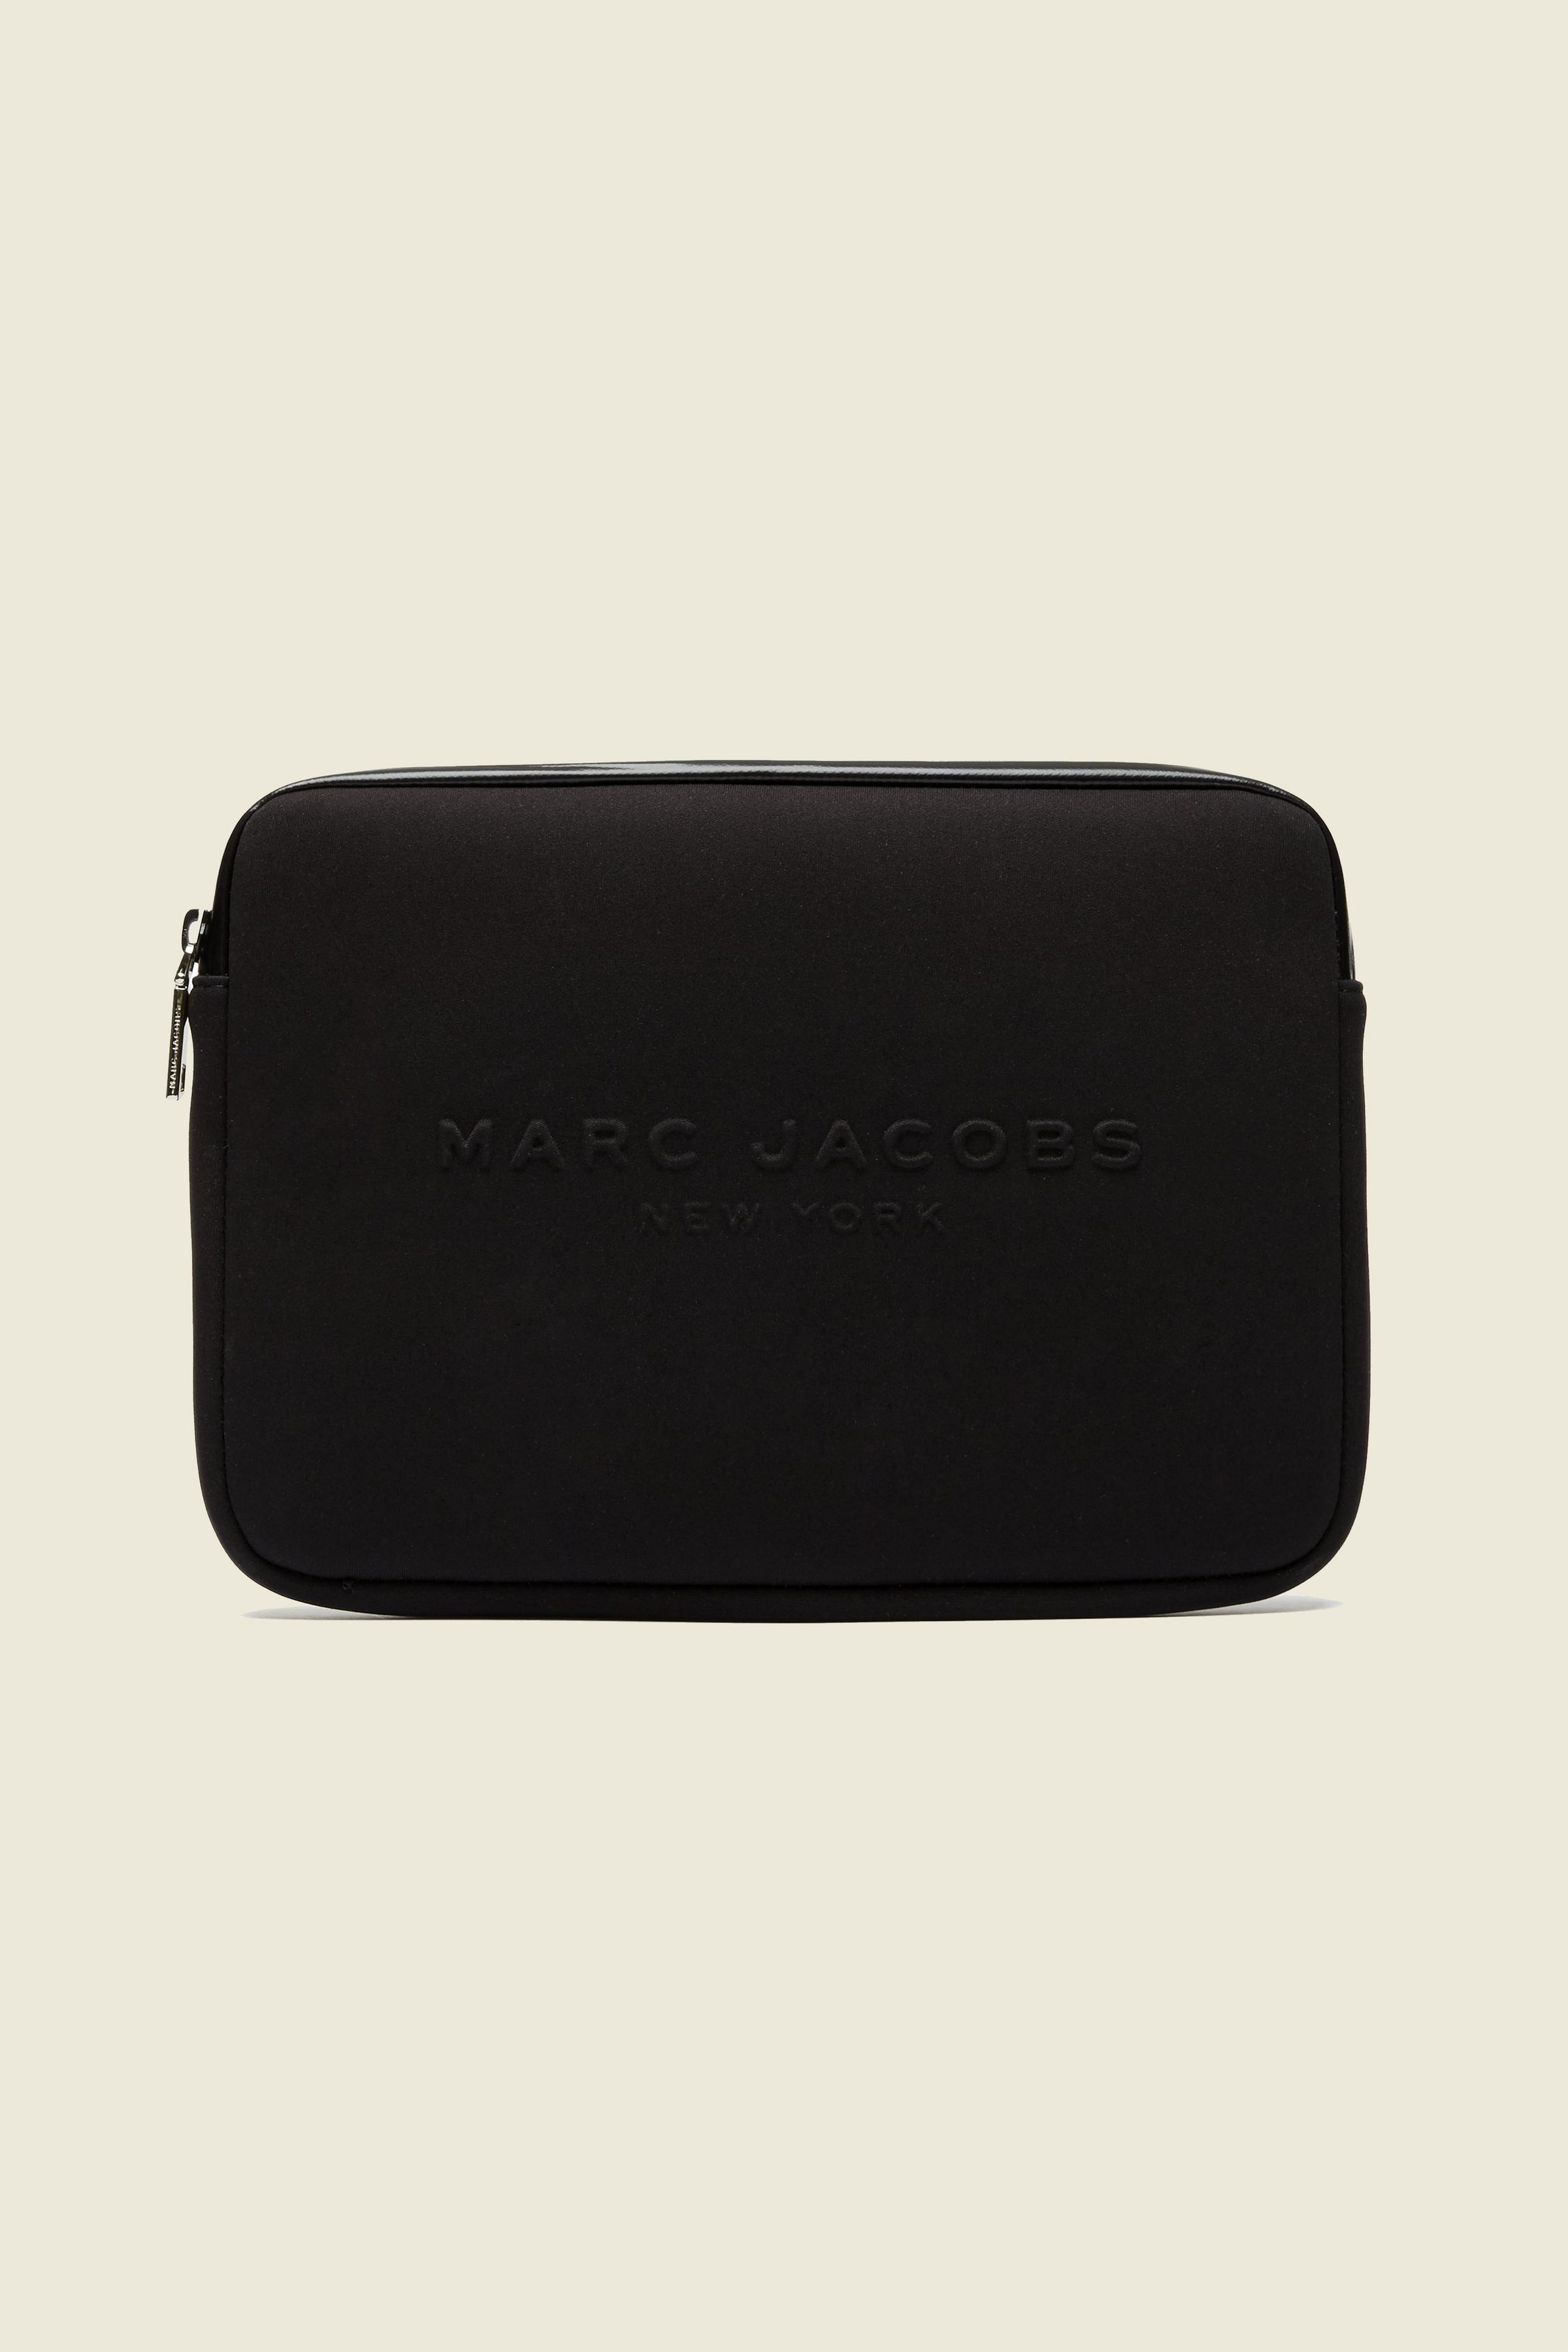 ★今だけ限定価格★MARC JACOBS/Neoprene Tablet Case